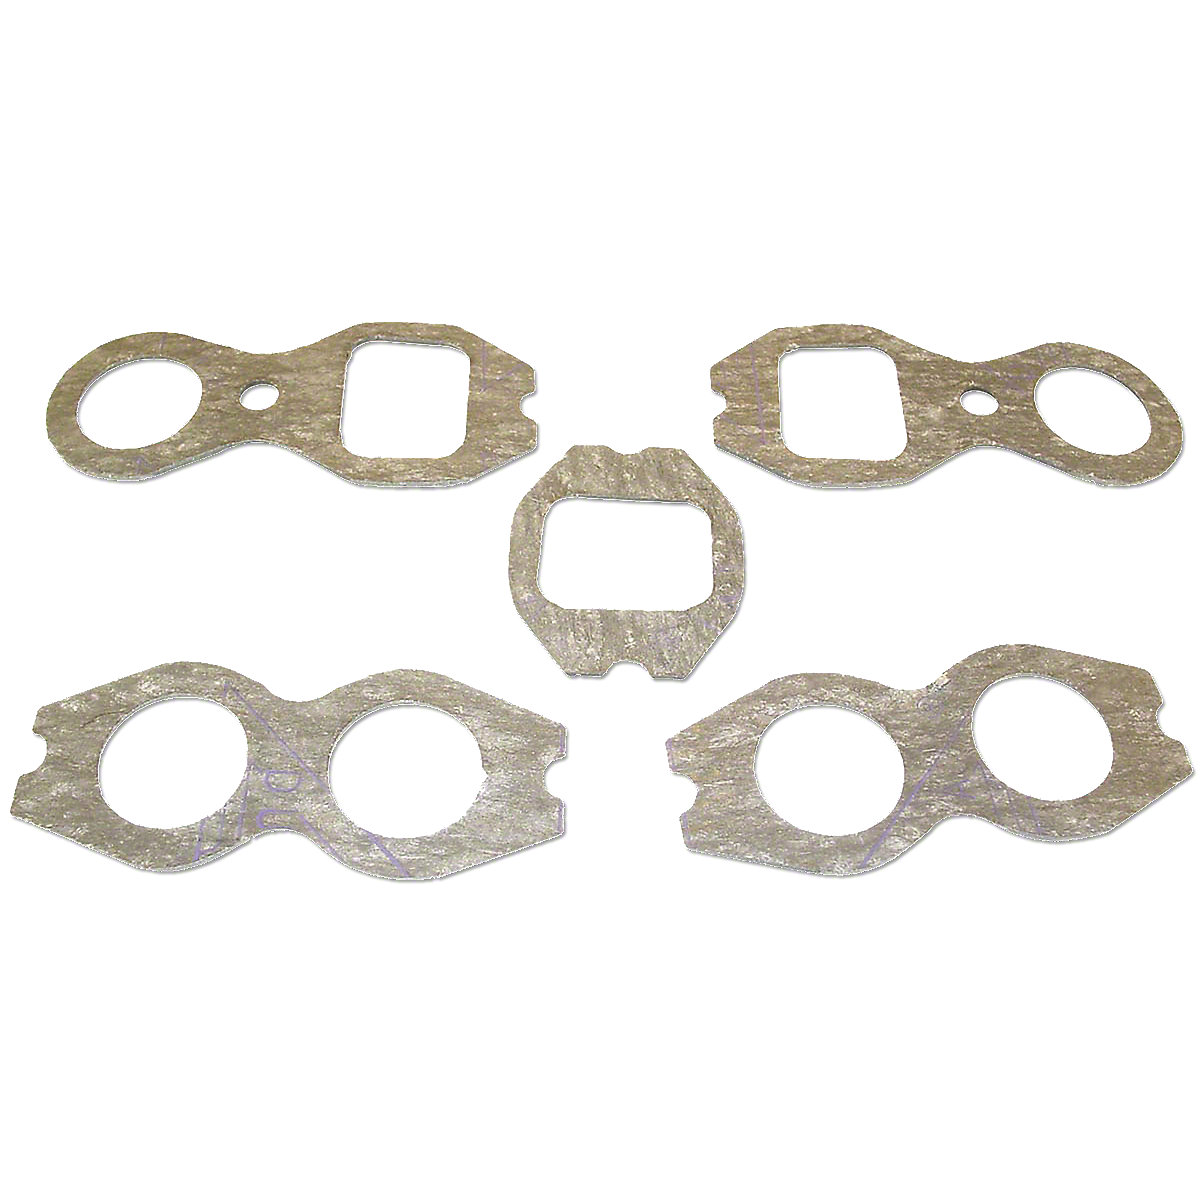 Intake and Exhaust Manifold Gasket Set For Massey Ferguson: 1100.